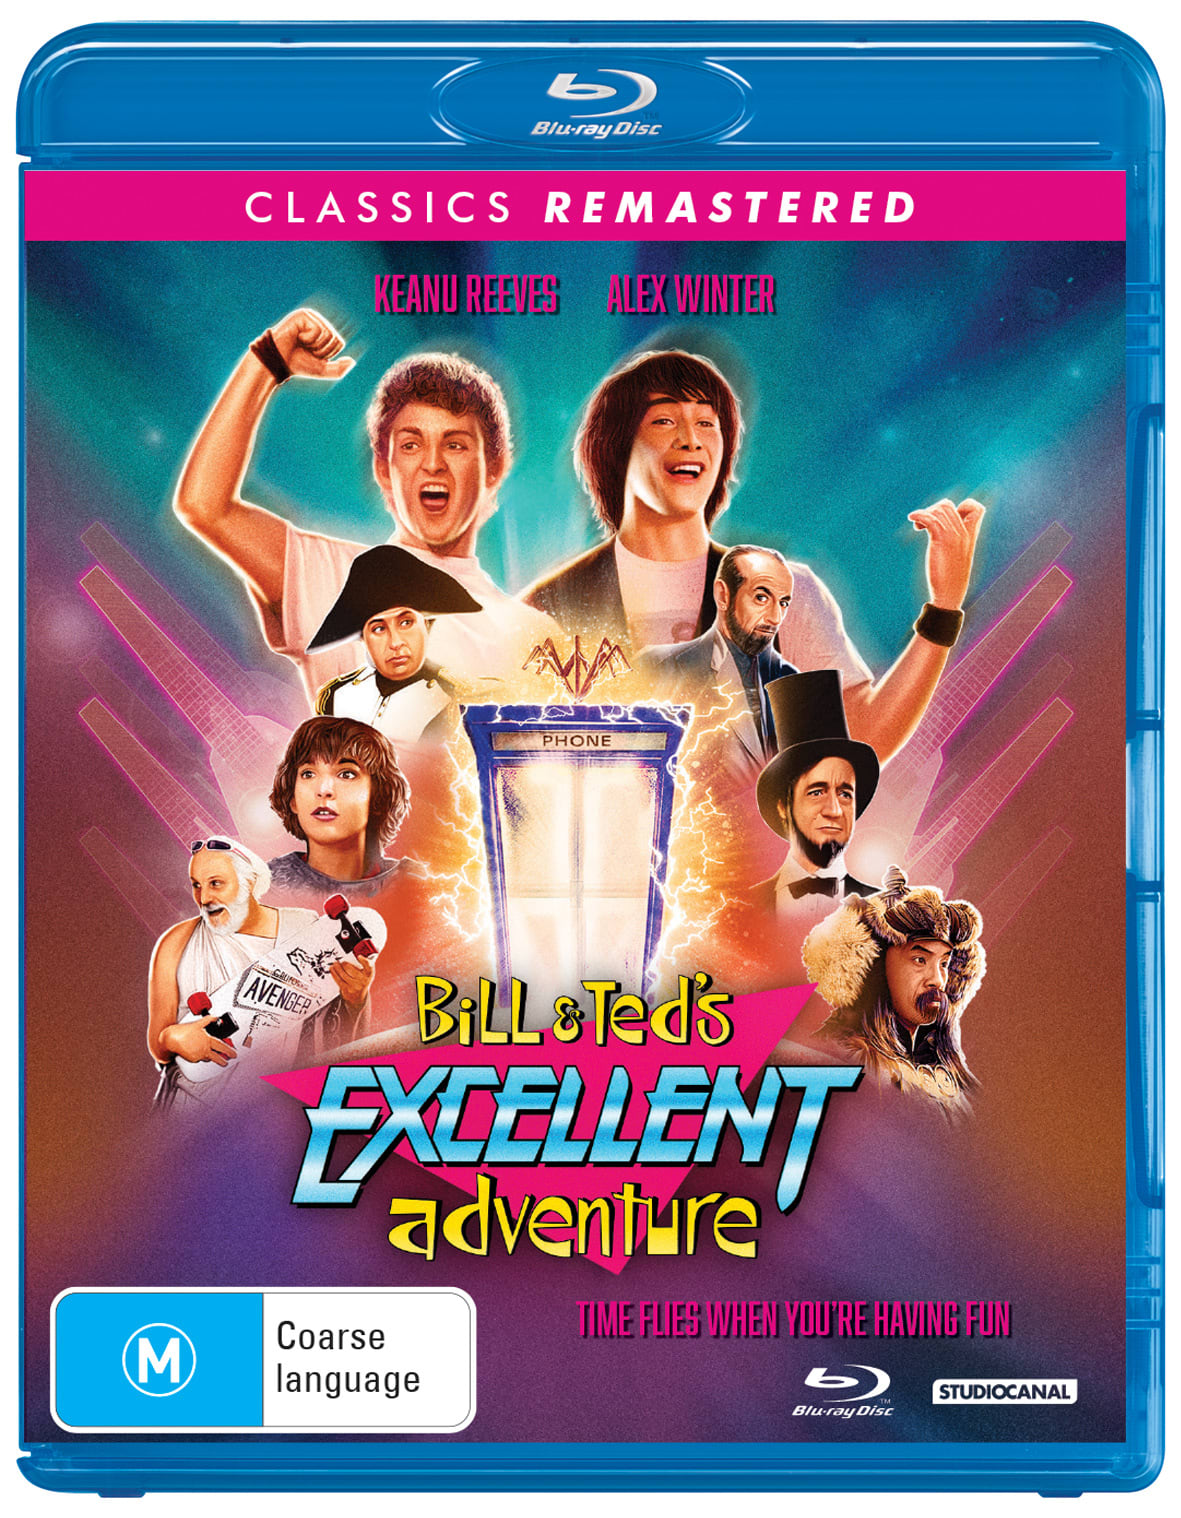 Classics Remastered - Bill & Ted's Excellent Adventure [Blu-ray]